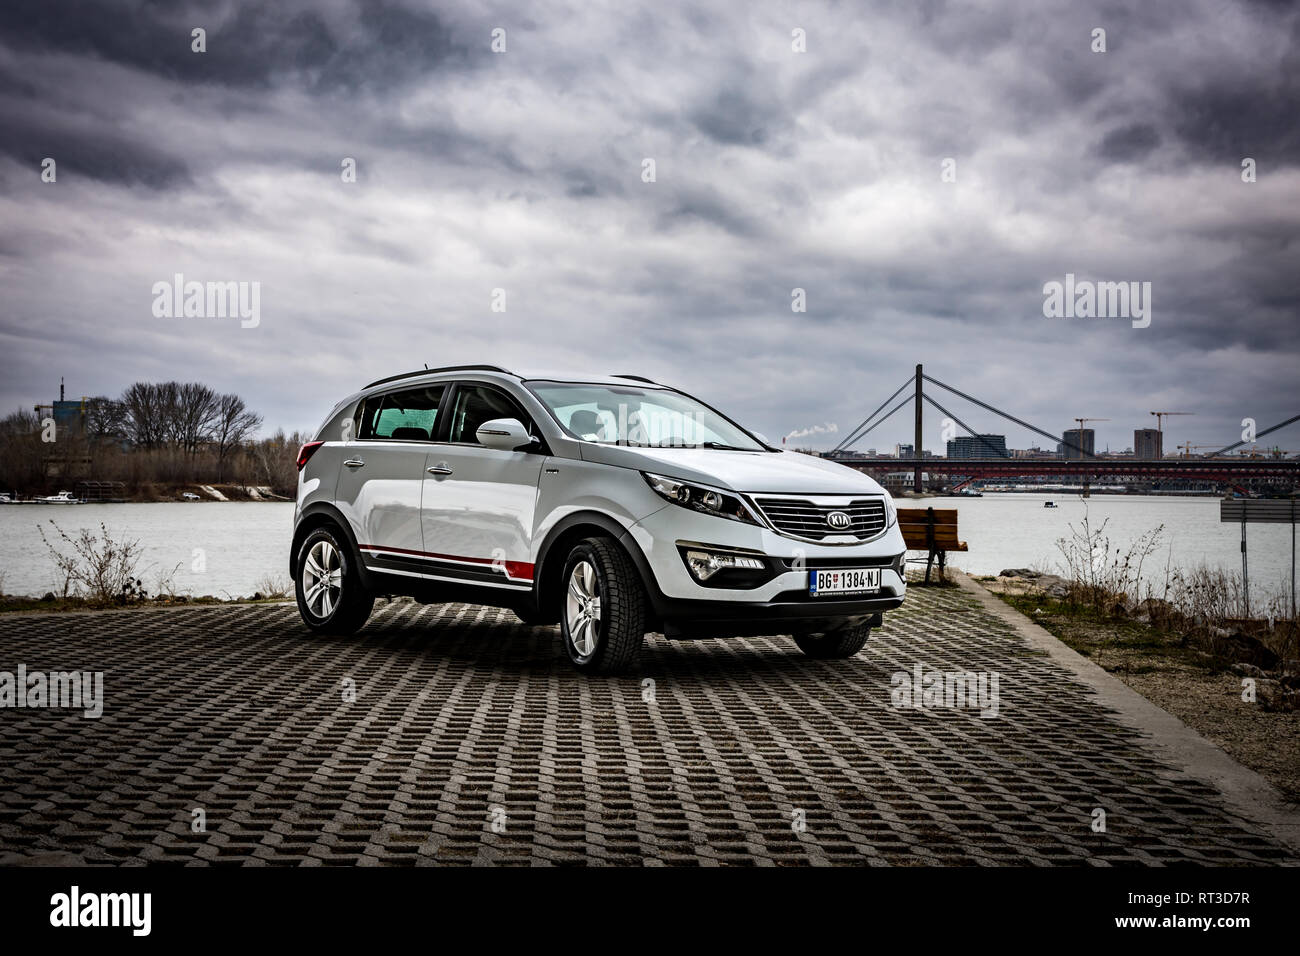 SUV Kia Sportage 2.0 CRDI awd or 4x4, white color, parked on the banks of the river Sava, on the stormy weather with gloomy clouds. Stock Photo